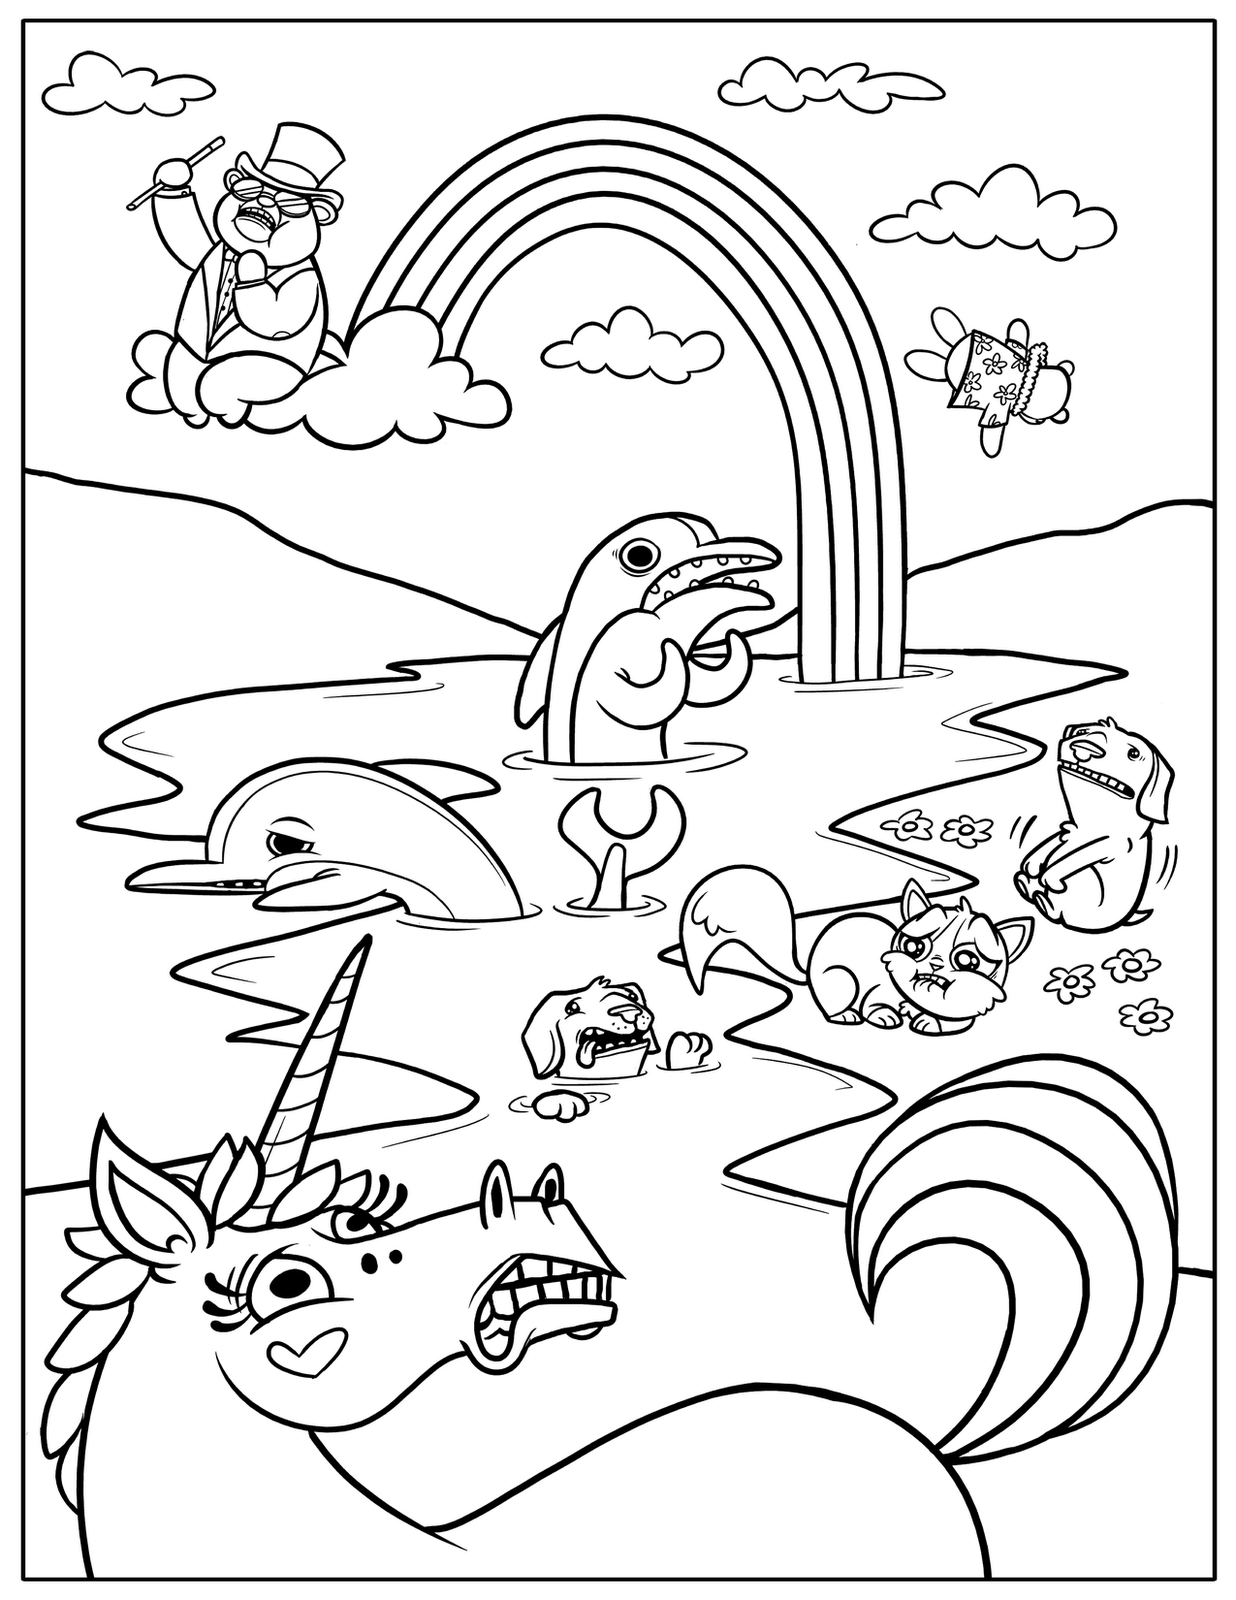 1236x1600 Free Printable Rainbow Coloring Pages For Kids